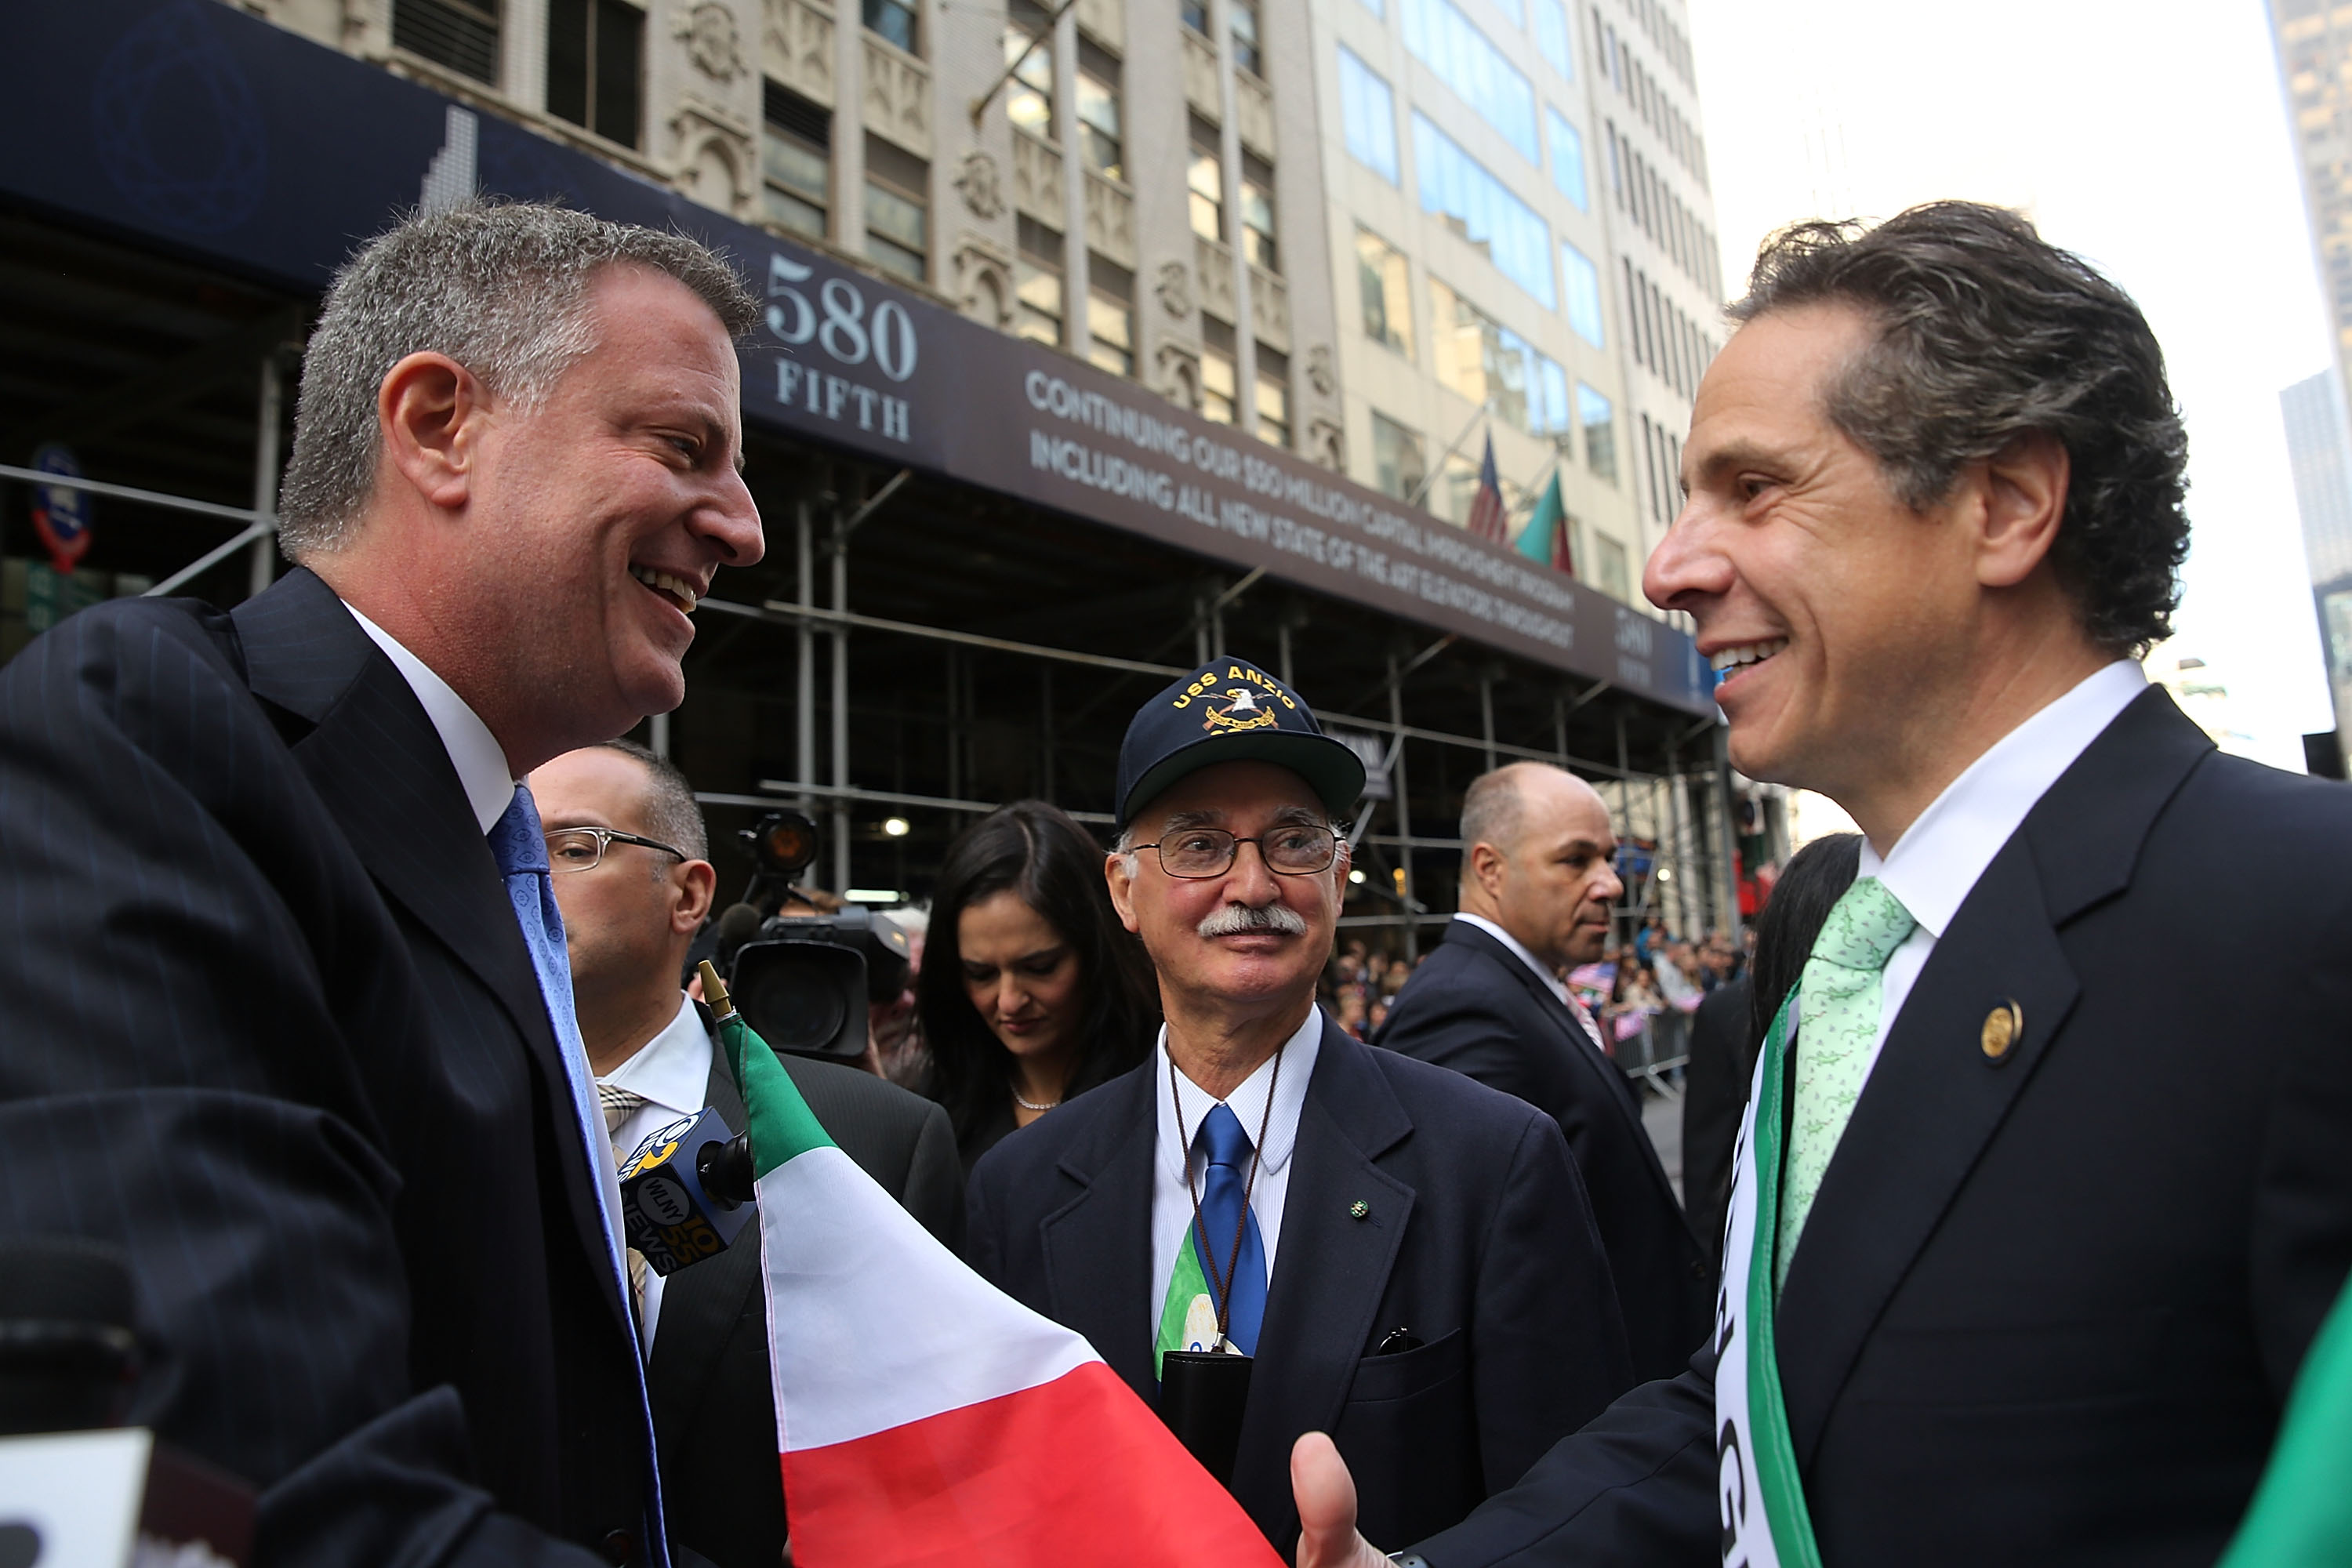 Bill de Blasio and Andrew Cuomo together at last year's Columbus Day Parade. This year, they didn't cross paths. (Photo: Spencer Platt/Getty Images)